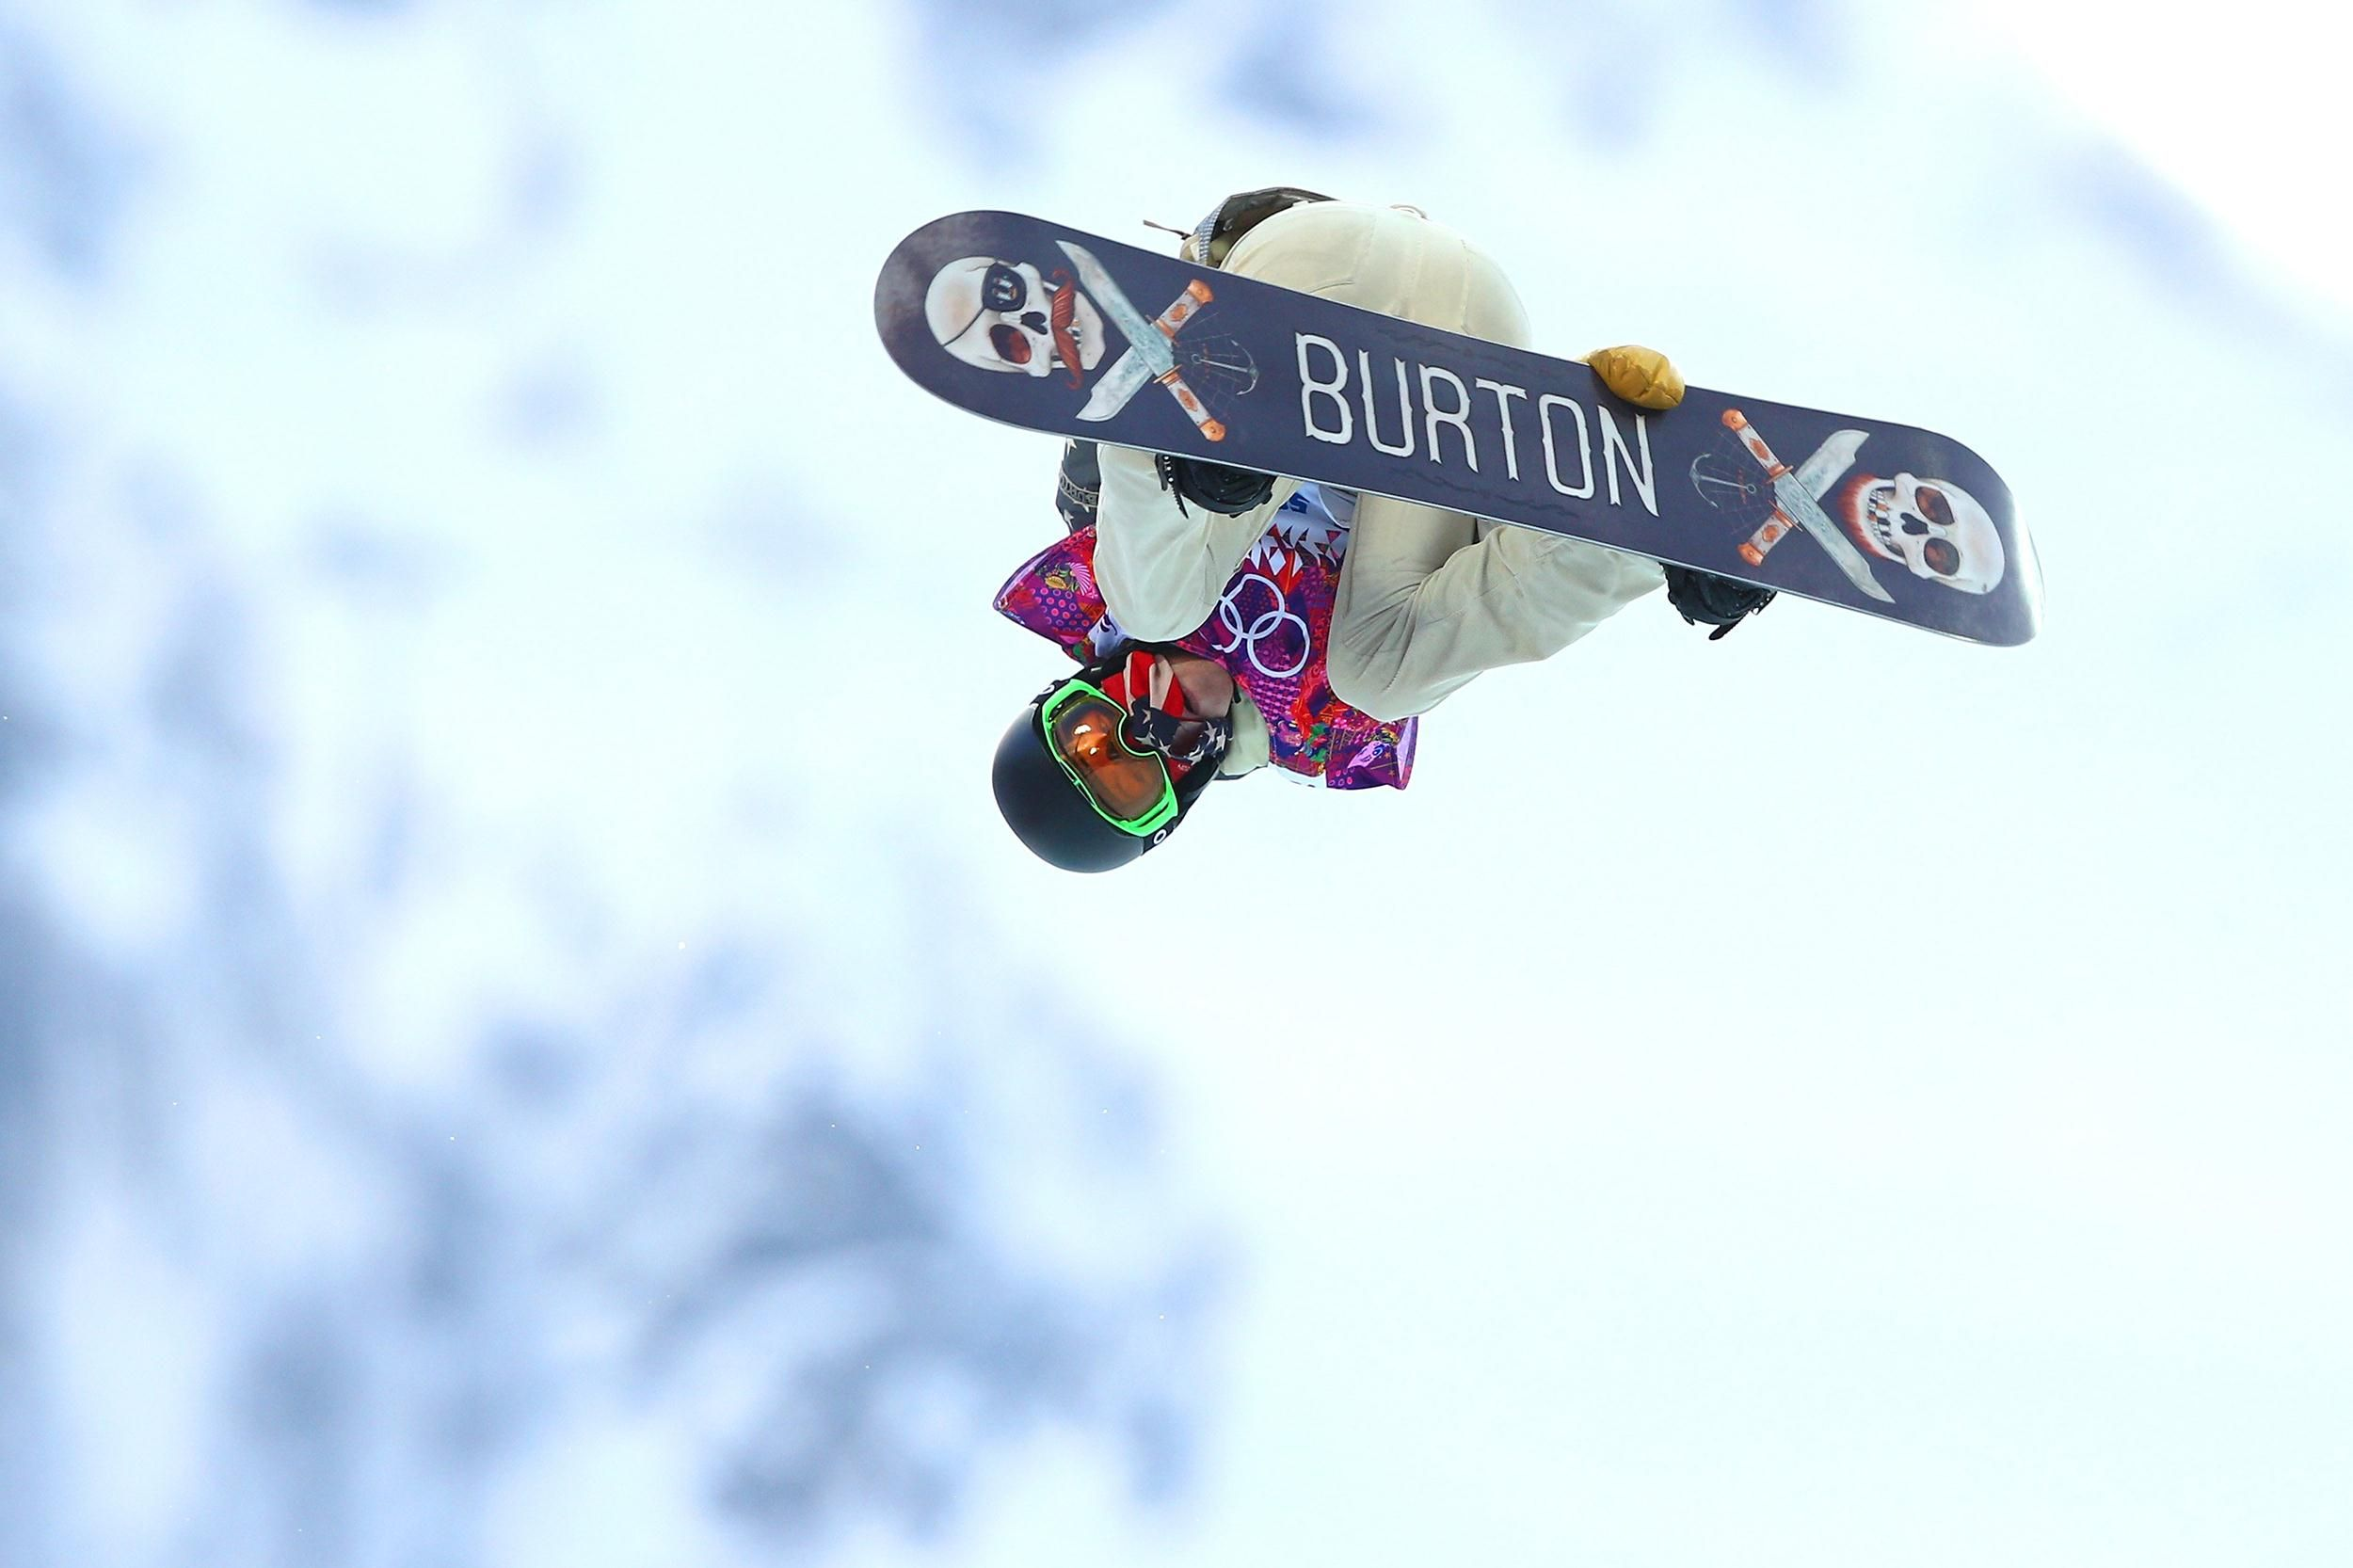 Shaun White Wallpapers High Quality   Download Free